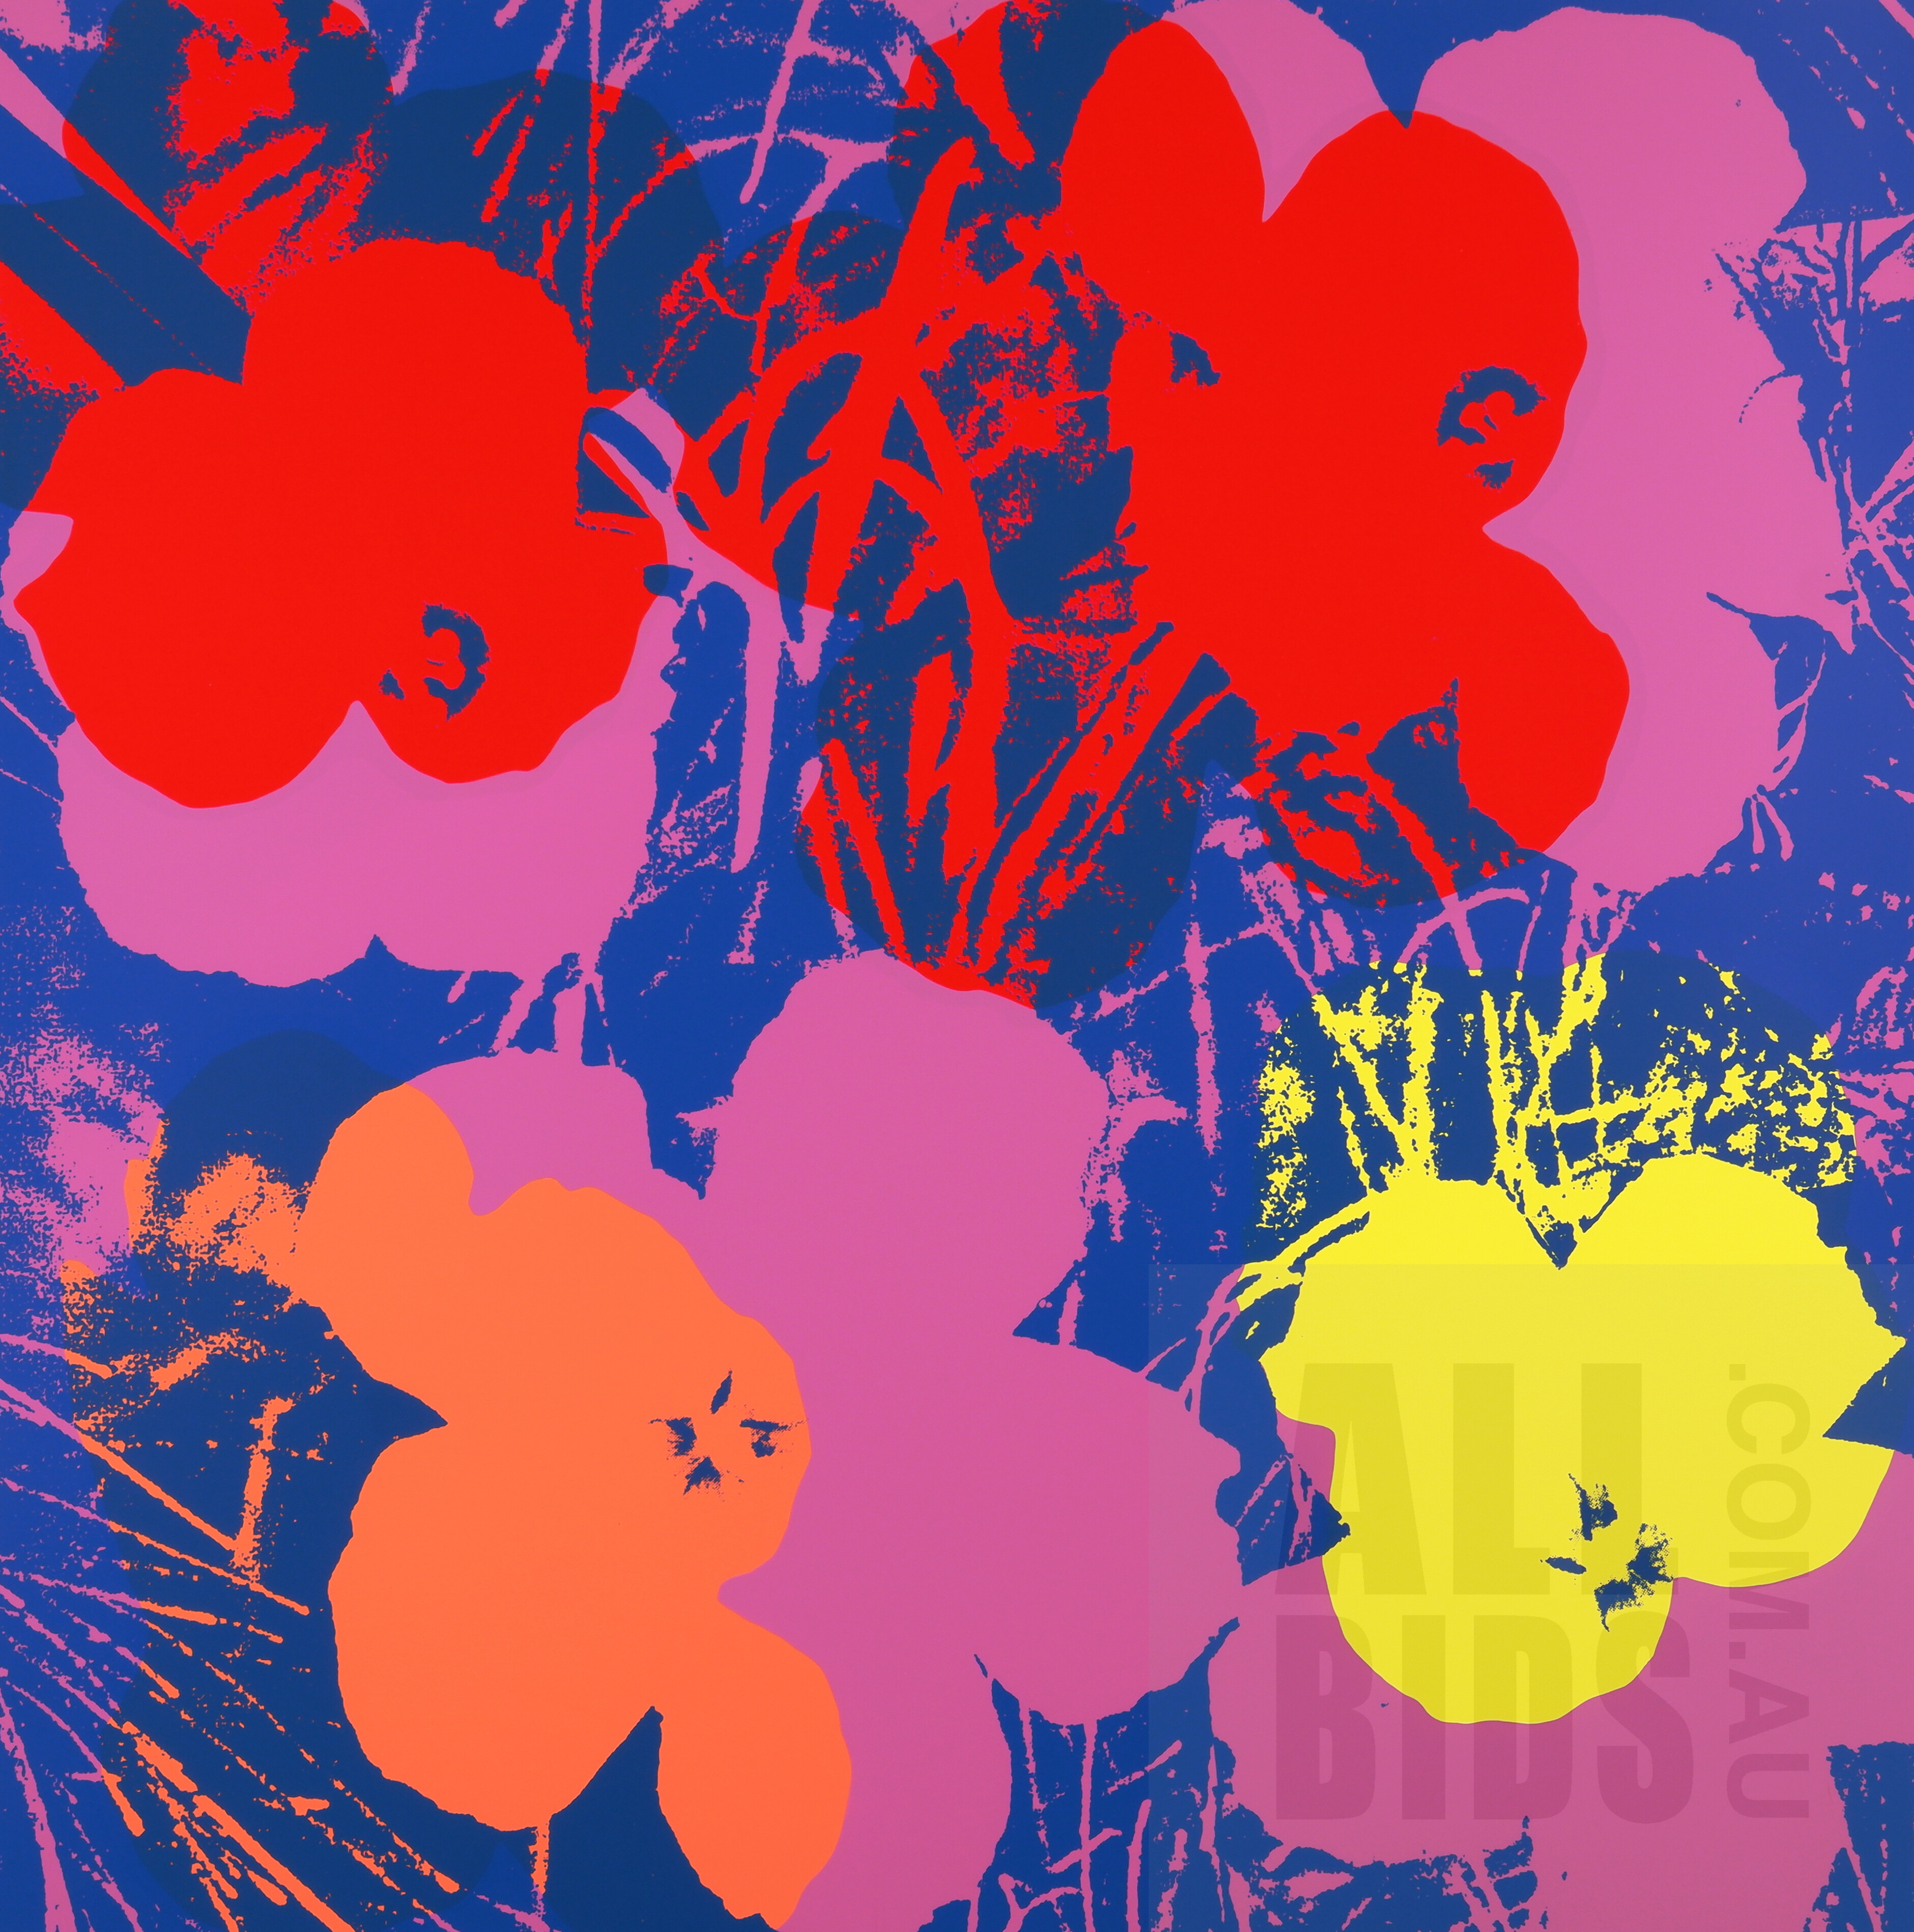 'After Andy Warhol, Flowers 11.66 (2018), Screenprint on Museum Board, Published by Sunday B. Morning, 90 x 90 cm'